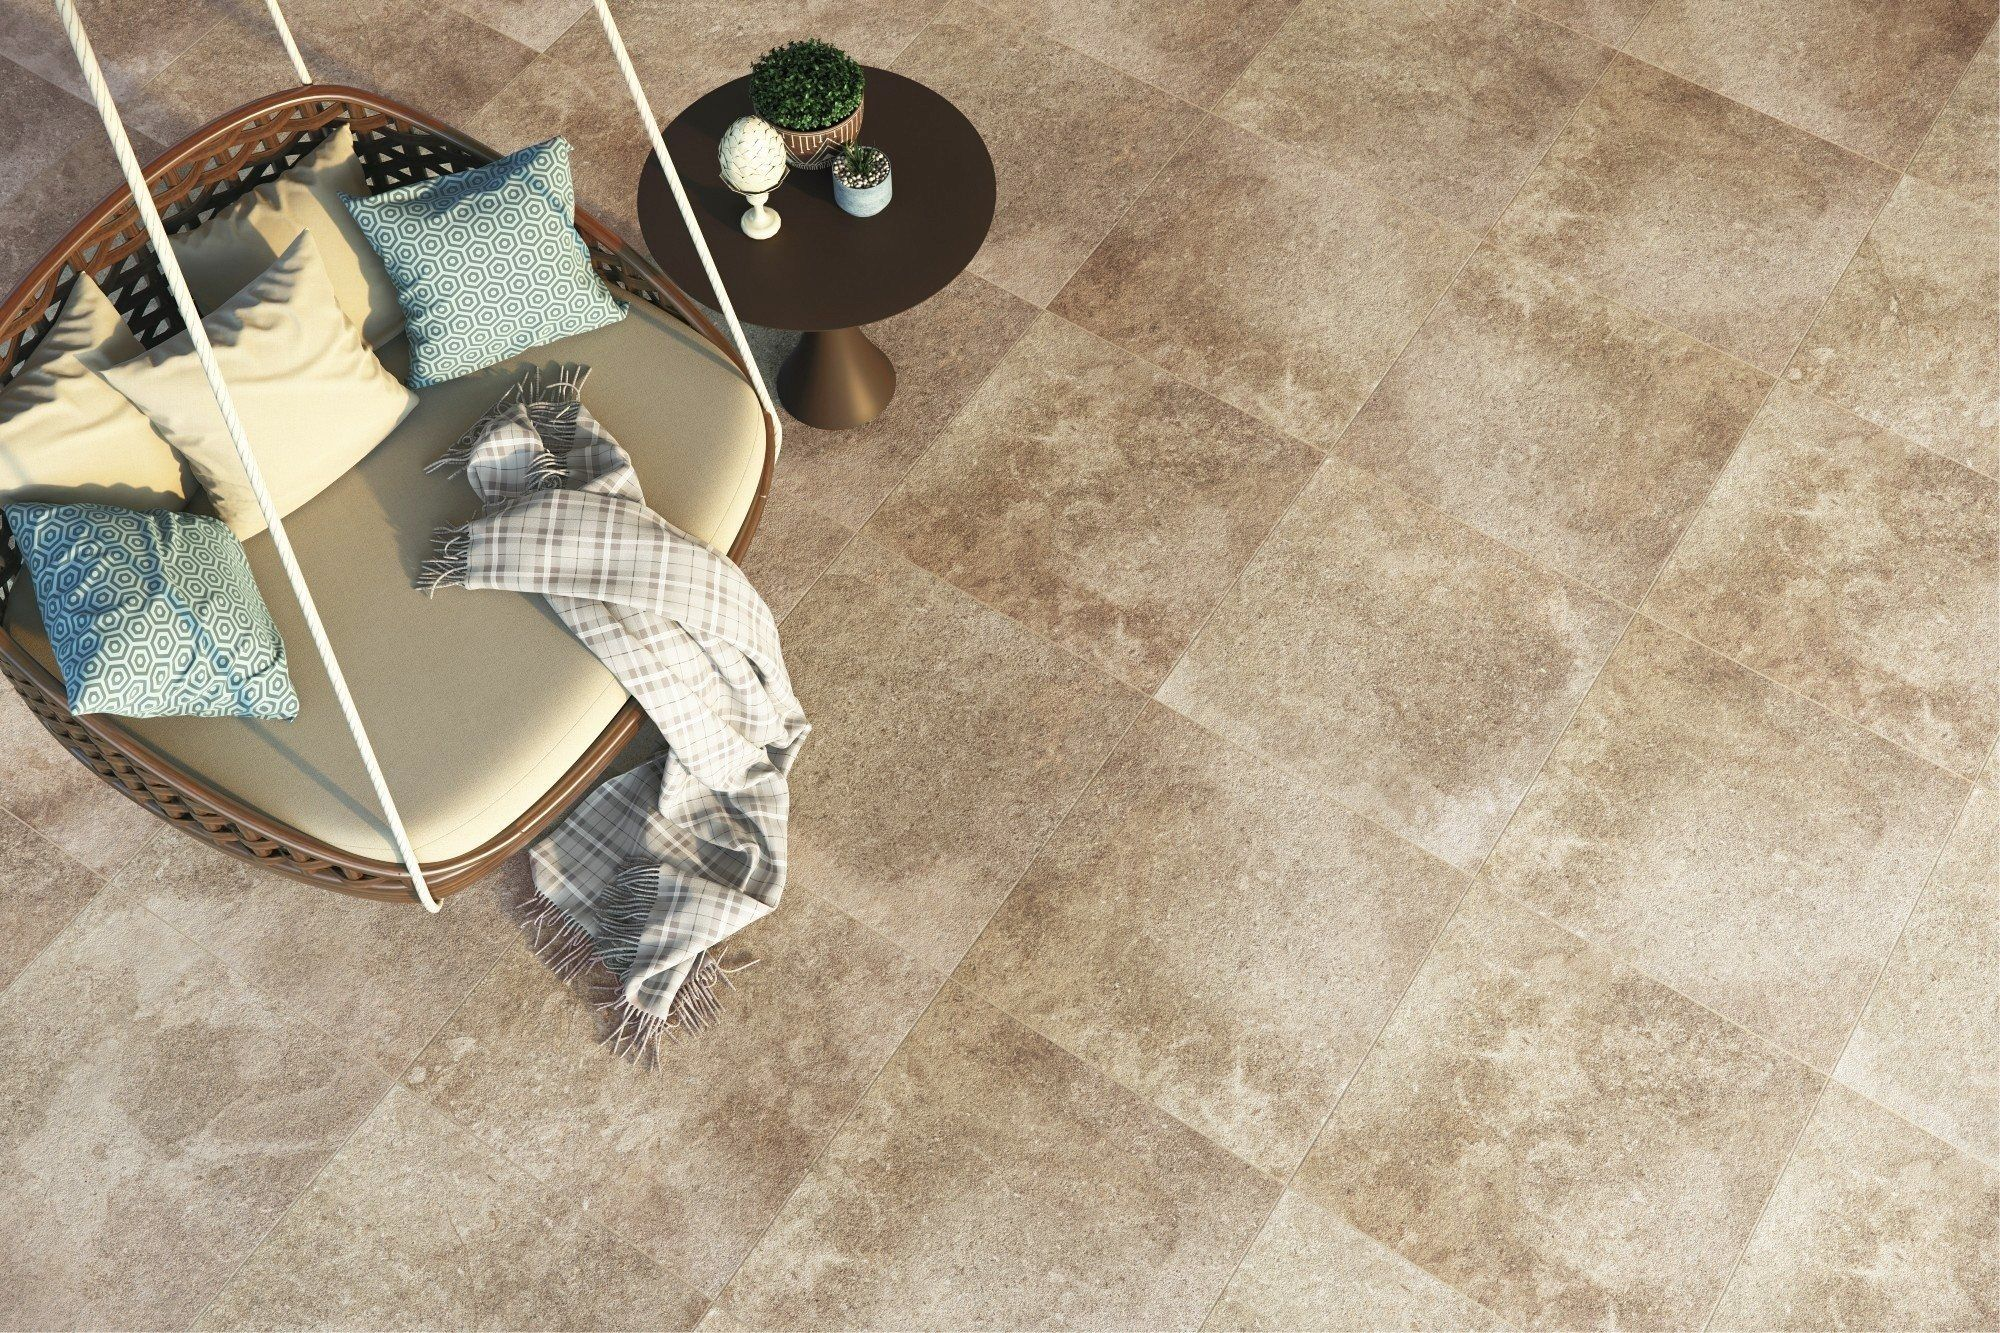 Looking For The Perfect Nonslip Tile For An Outdoor Patio Look No Further Than Montac A 2019 Slate Look Porcelain Ti Exterior Tiles Surface Art Outdoor Patio